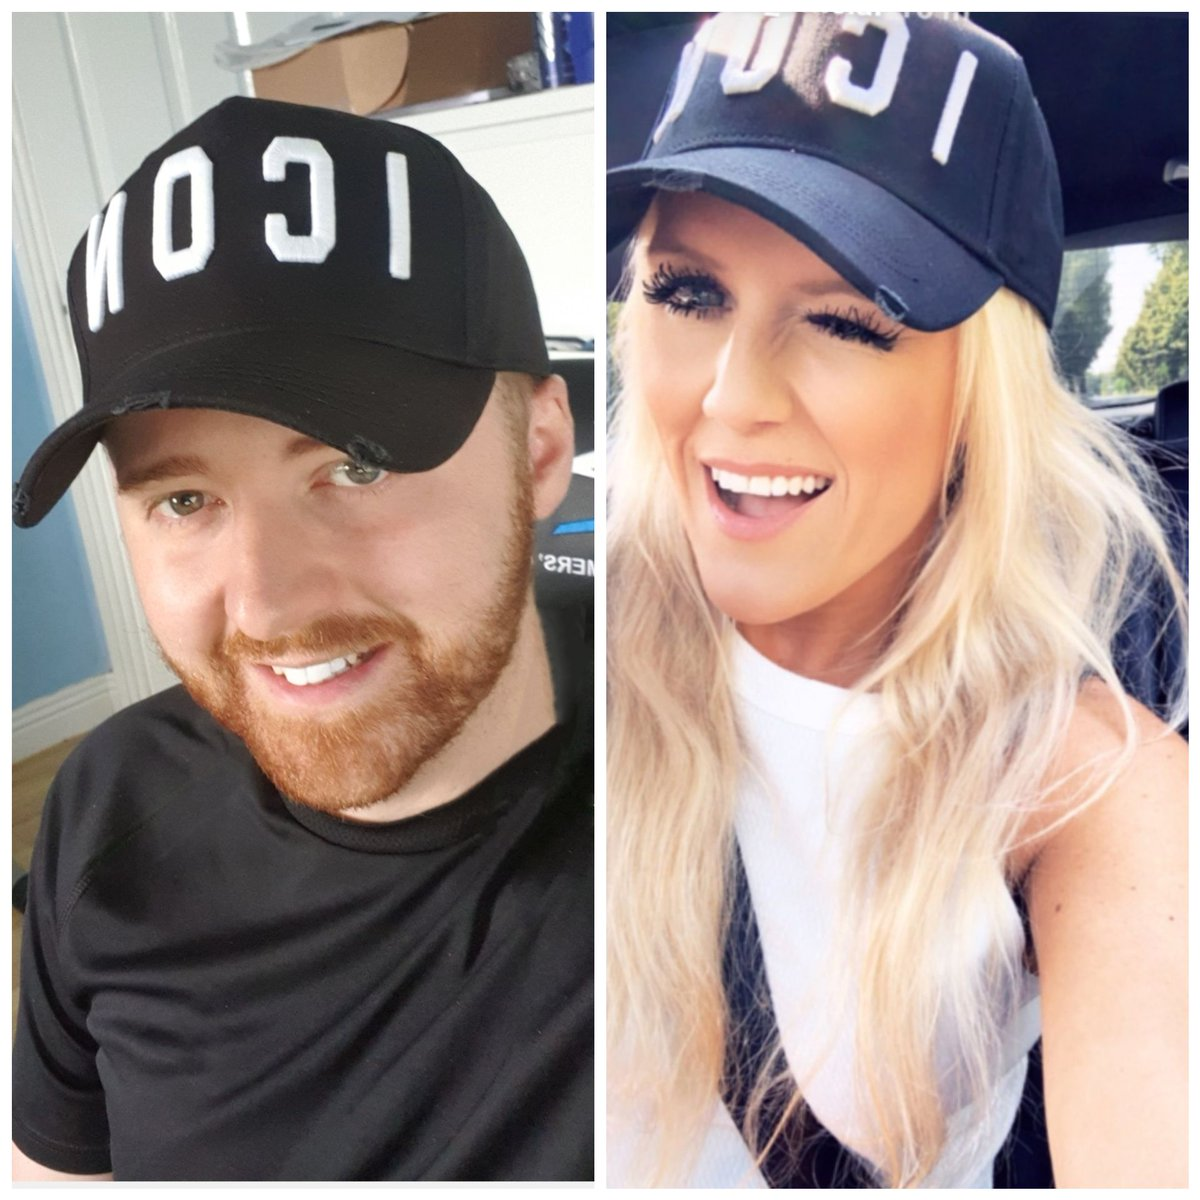 Just realised we are twinning @cascada_music  #Hats #Dsquared2 pic.twitter.com/NFh9mNUvqL